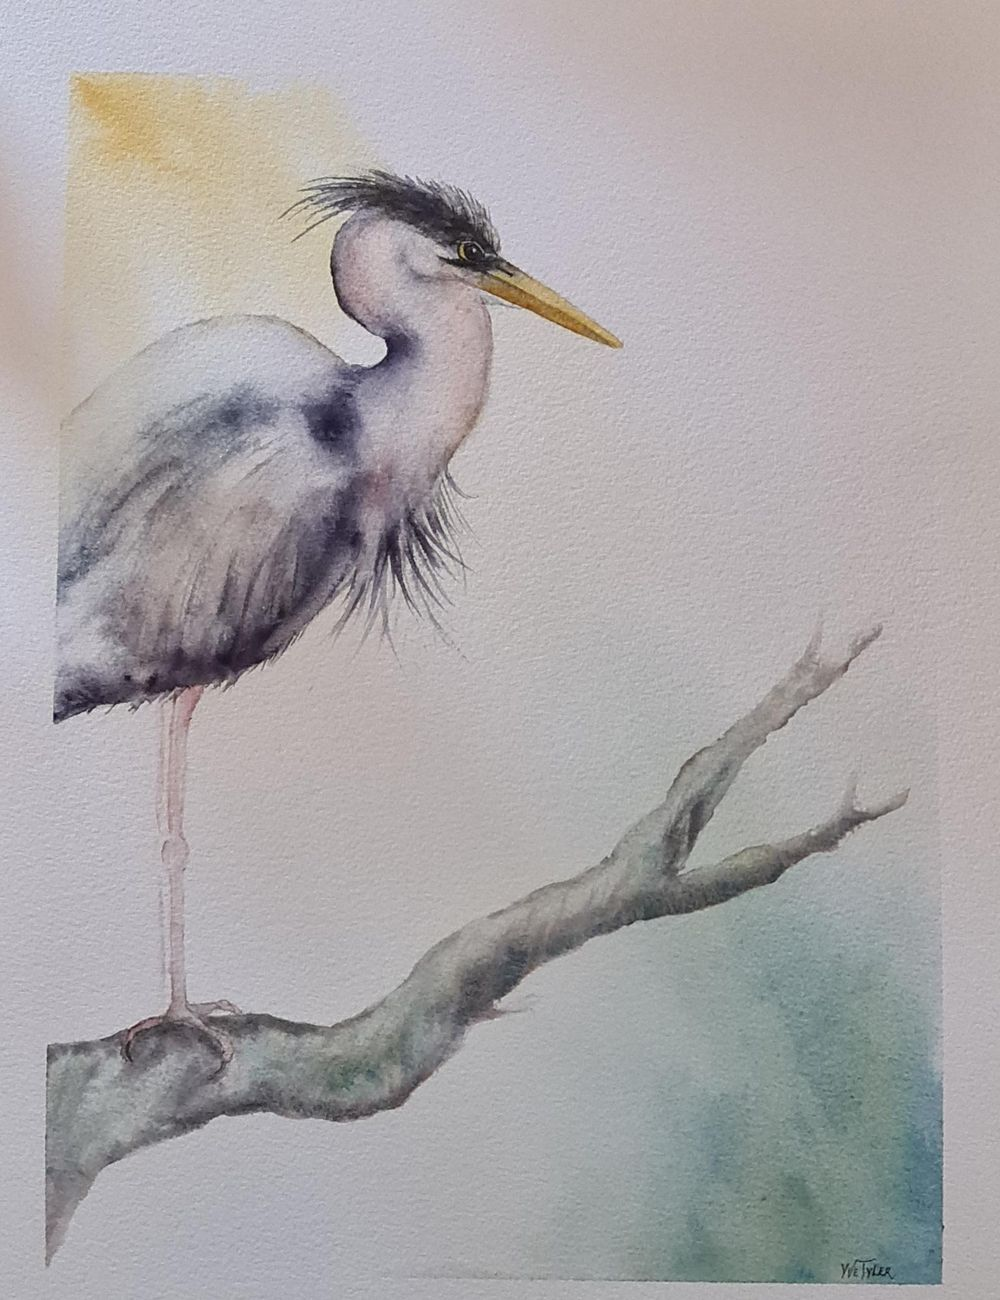 Harry the Heron - image 1 - student project